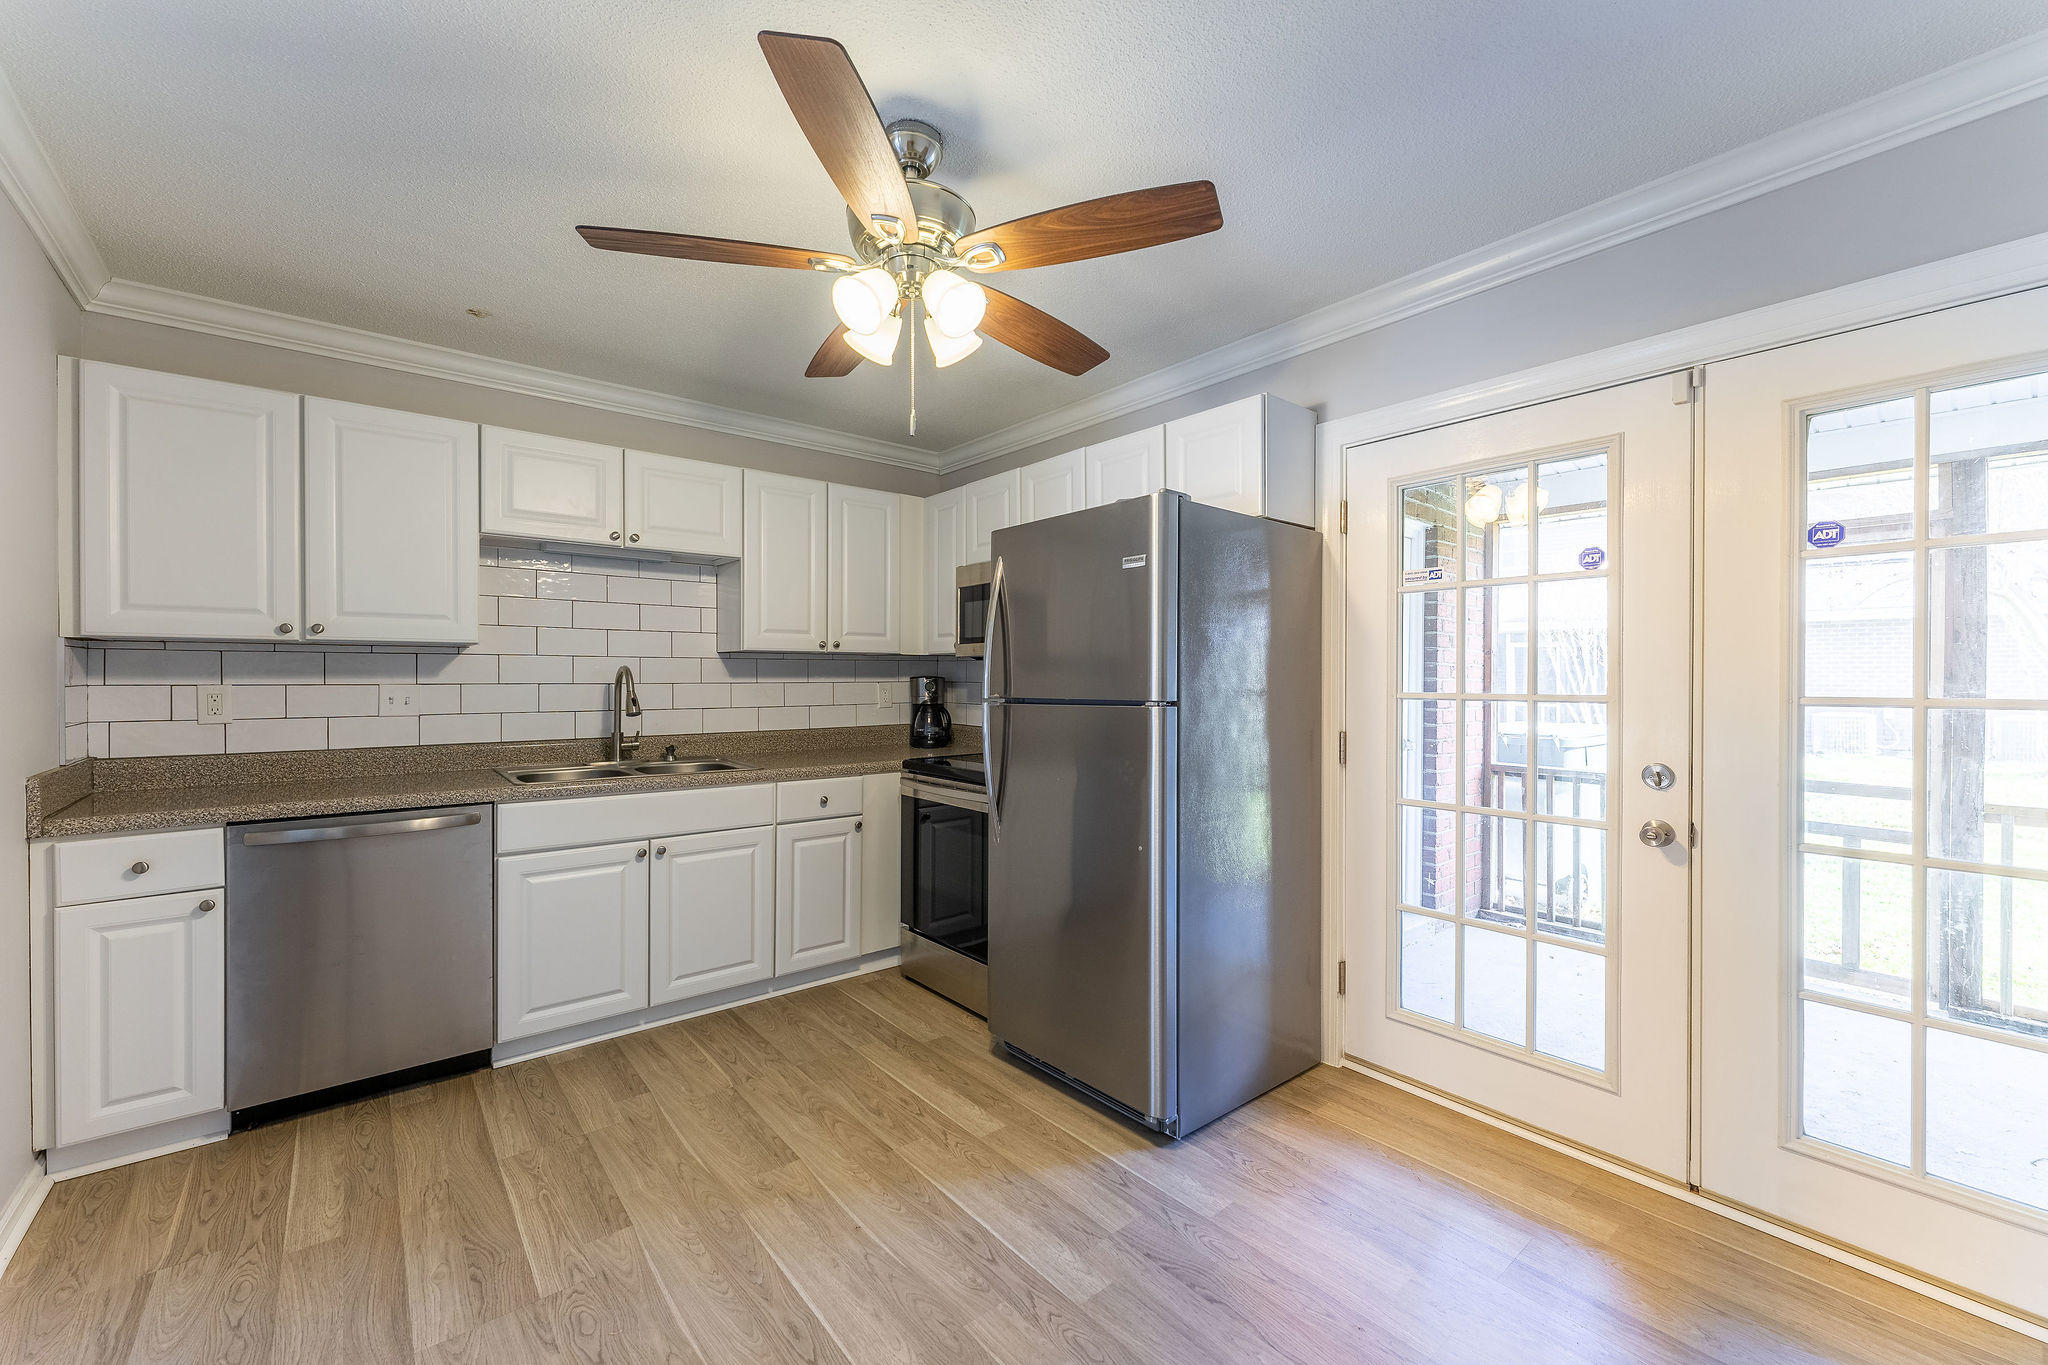 Mepkin Place Homes For Sale - 1713 Boone Hall, Charleston, SC - 21